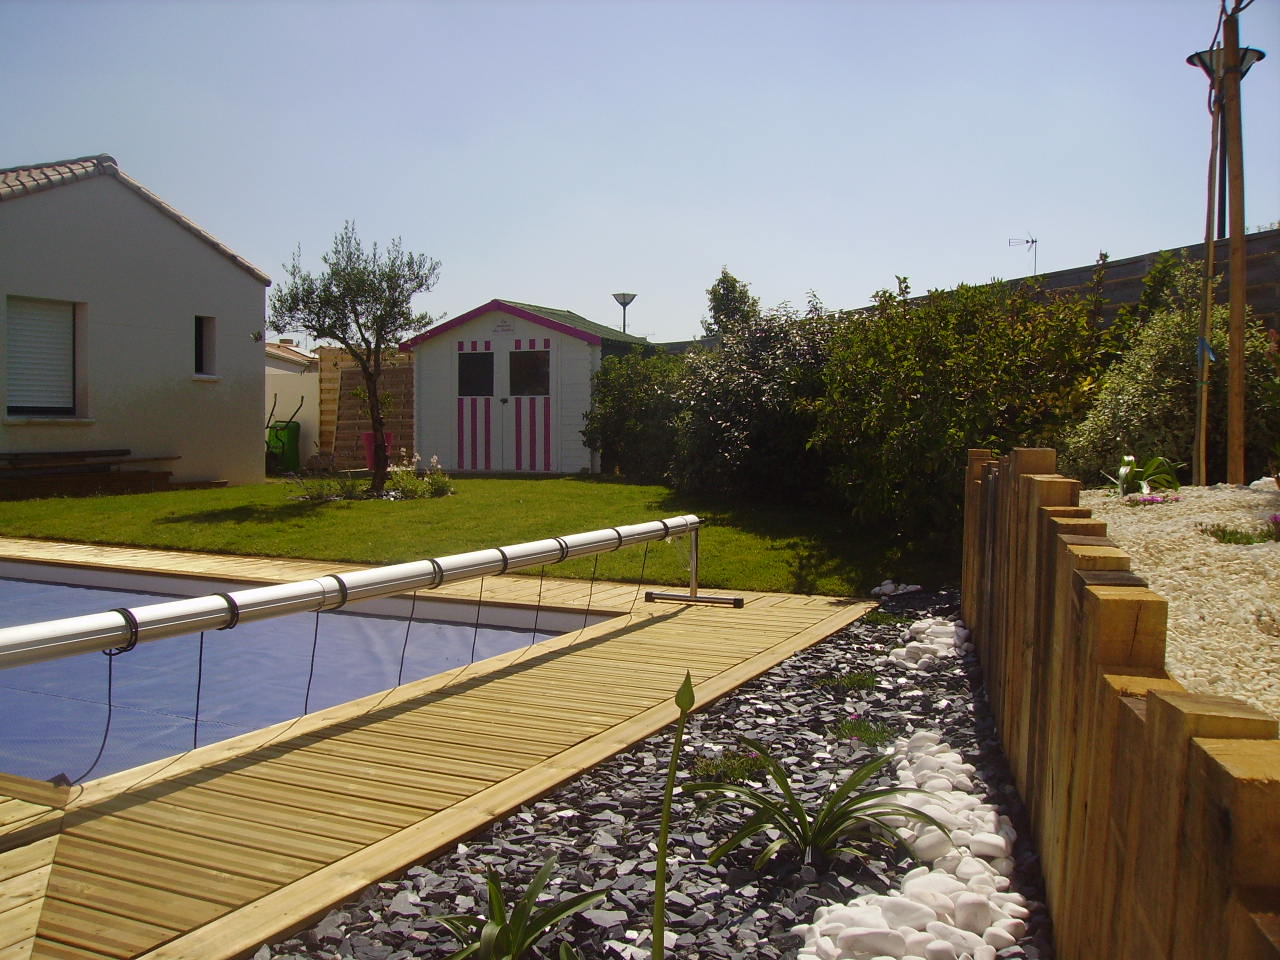 Amenagement autour de la piscine with amenagement autour for Amenagement piscine